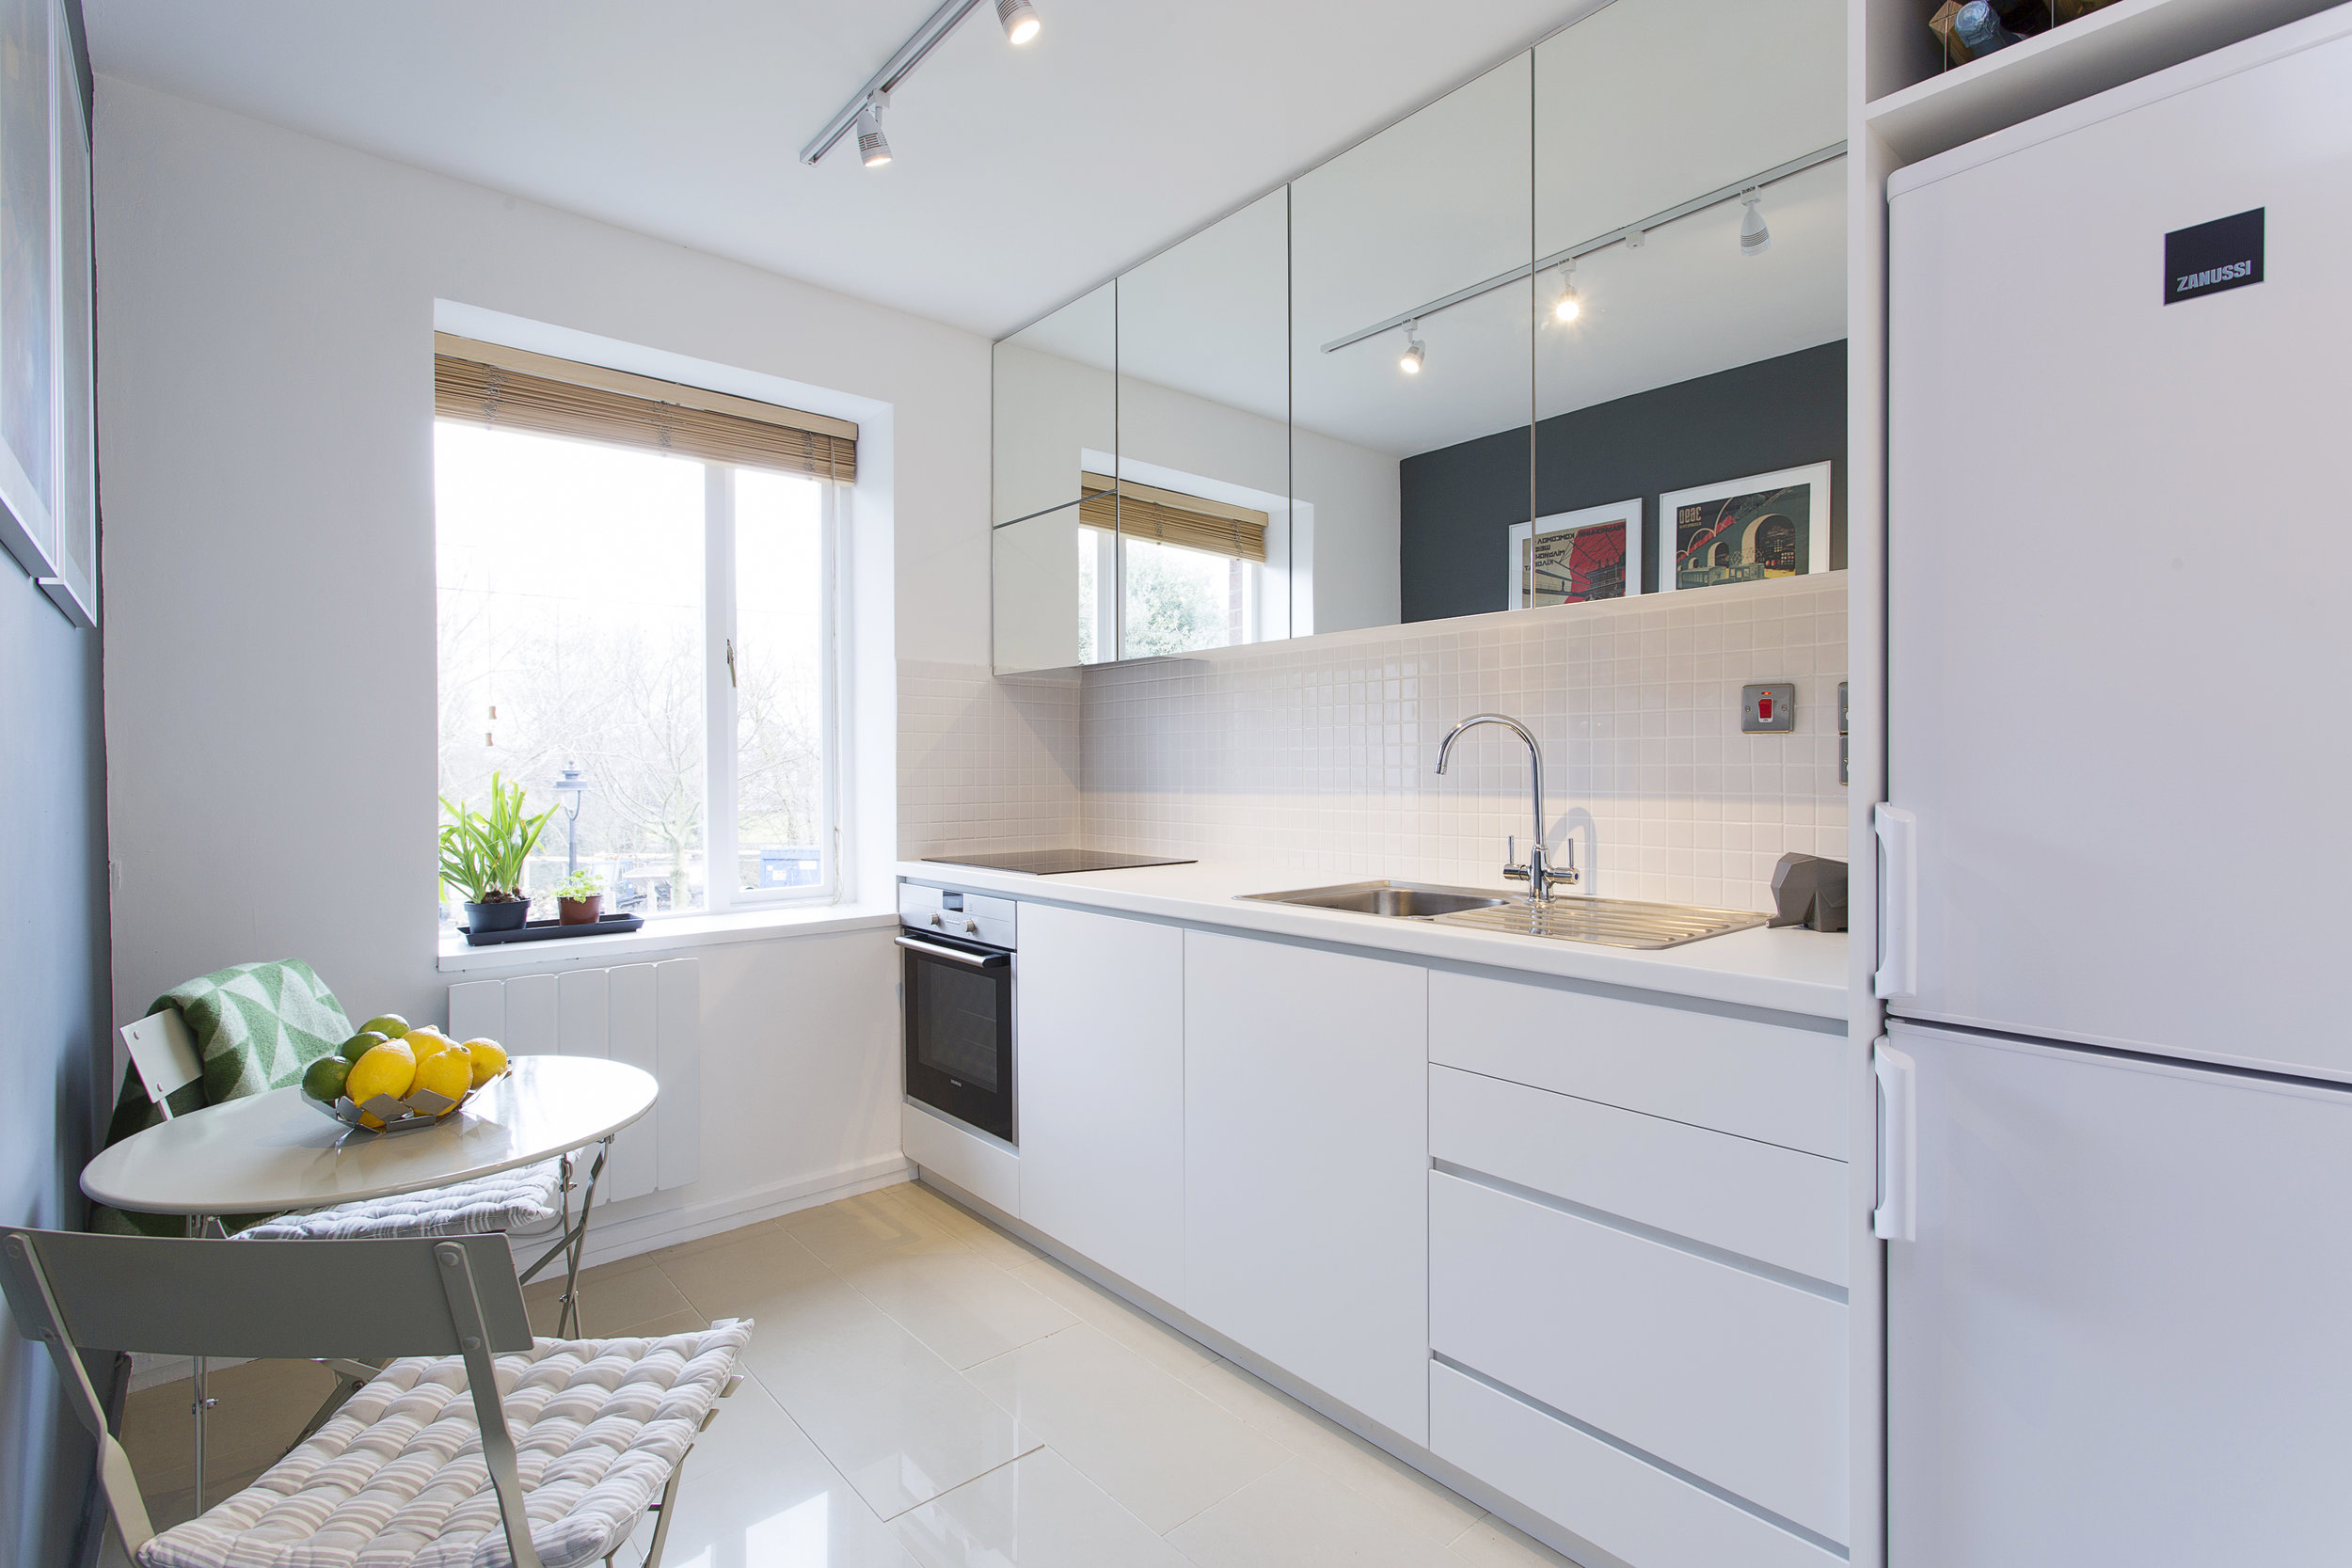 Apartment Refurbishment - Custom Kitchen February 2015